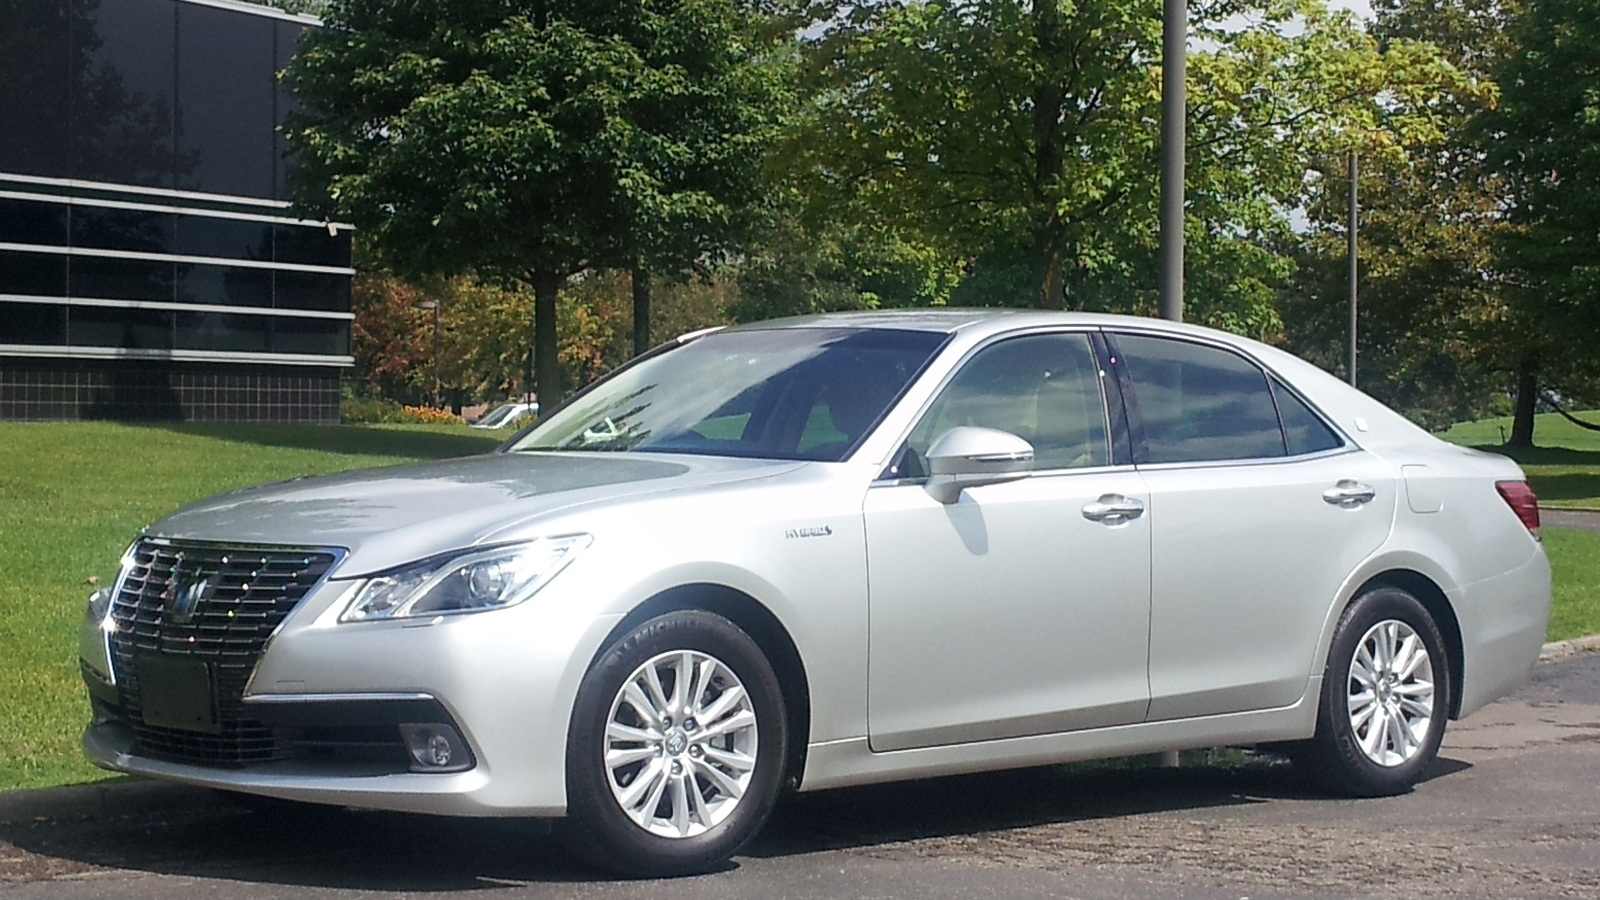 2013 Toyota Crown Royal Saloon Hybrid (for Japanese market)